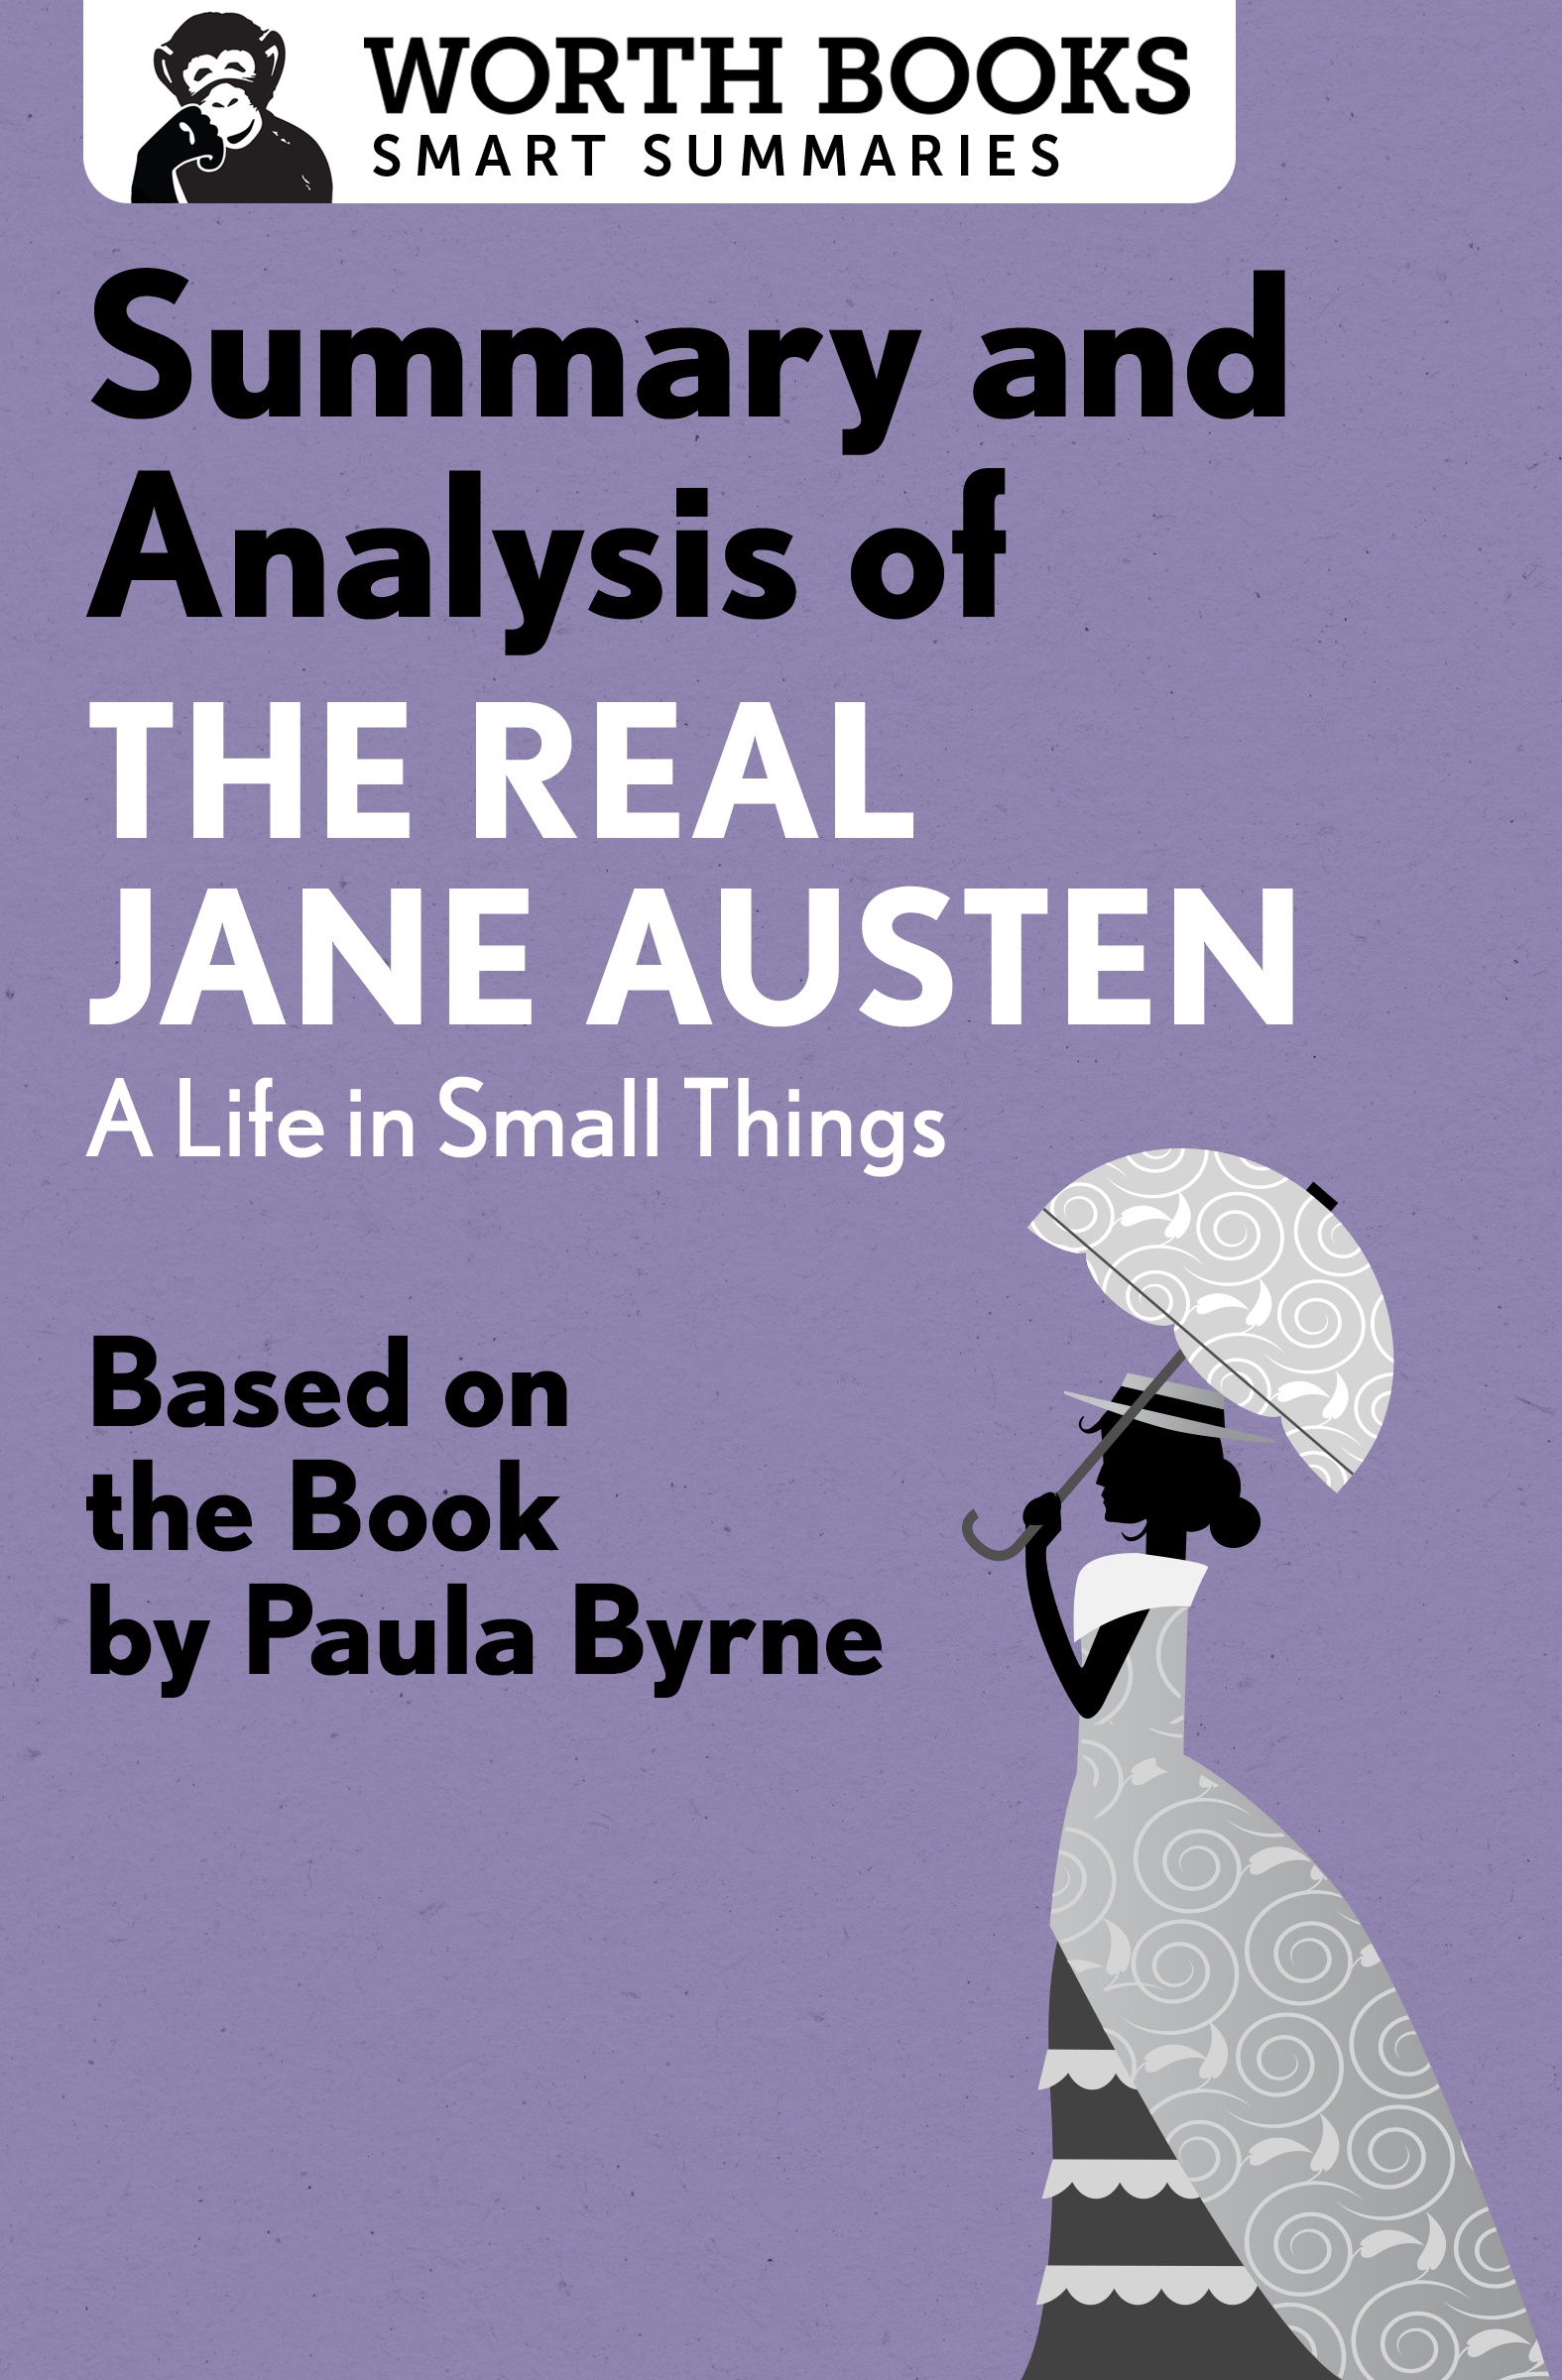 Summary and Analysis of The Real Jane Austen: A Life in Small Things: Based on the Book by Paula Byrne